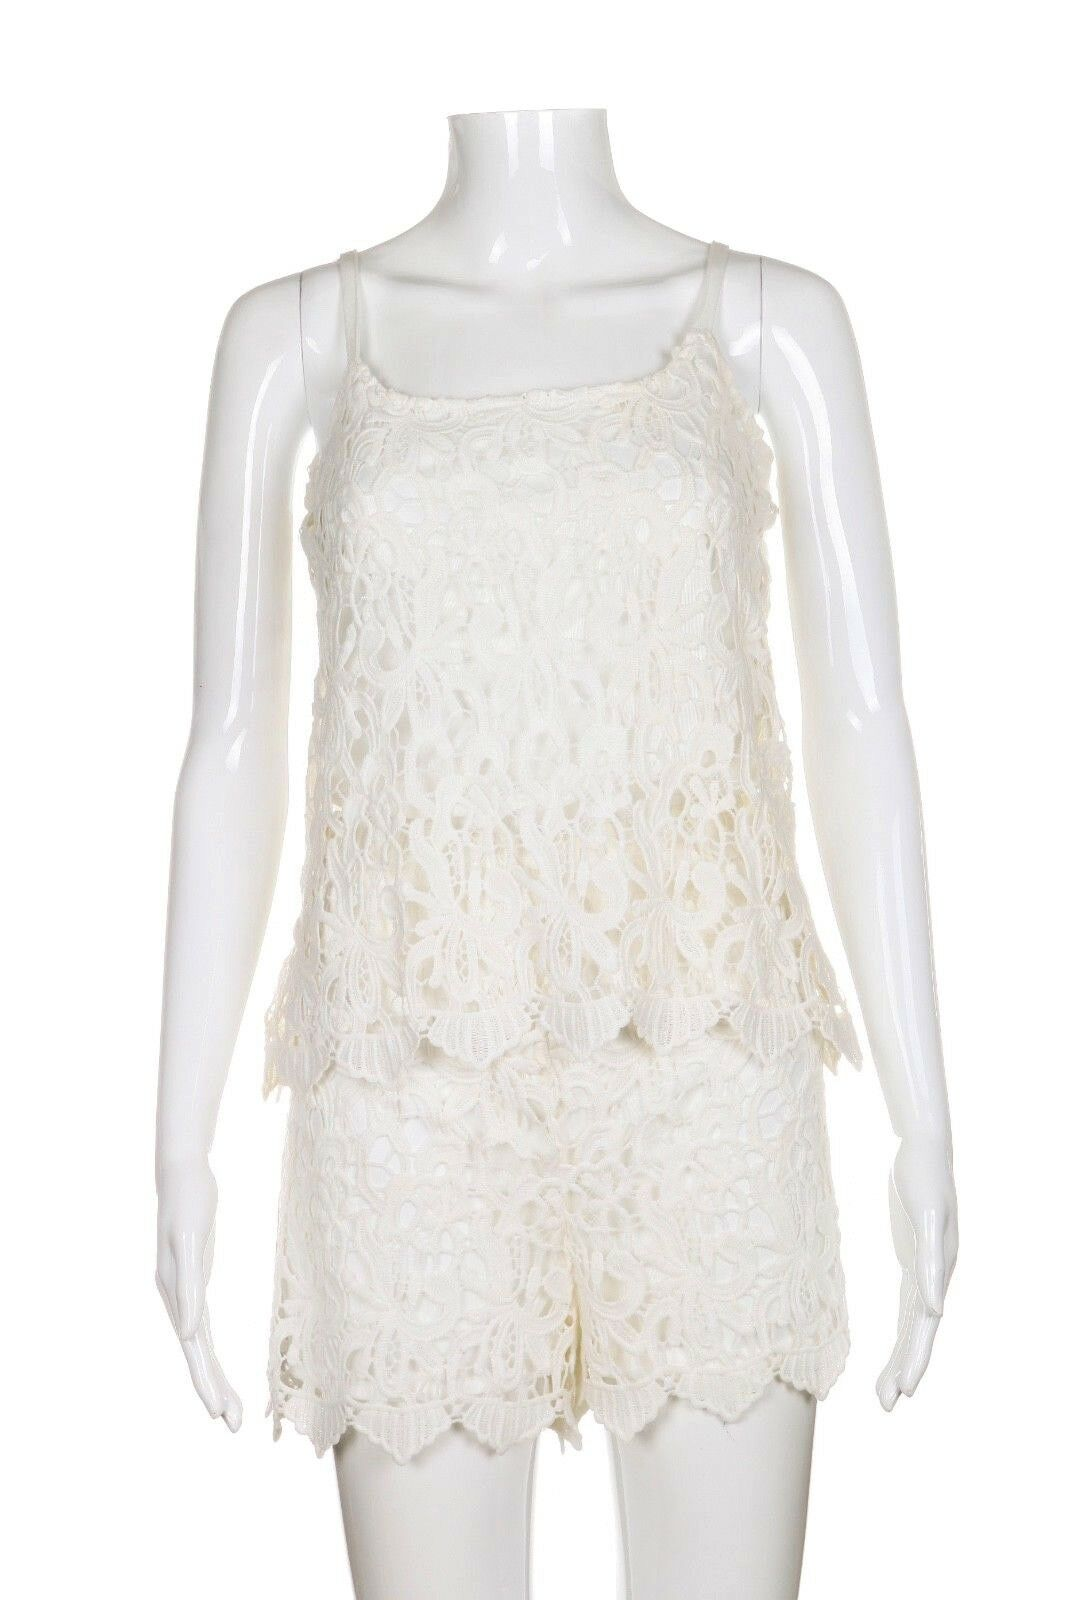 NWT ROMEO + JULIET COUTURE Crochet Romper Large White Short Lace Boho New Ivory